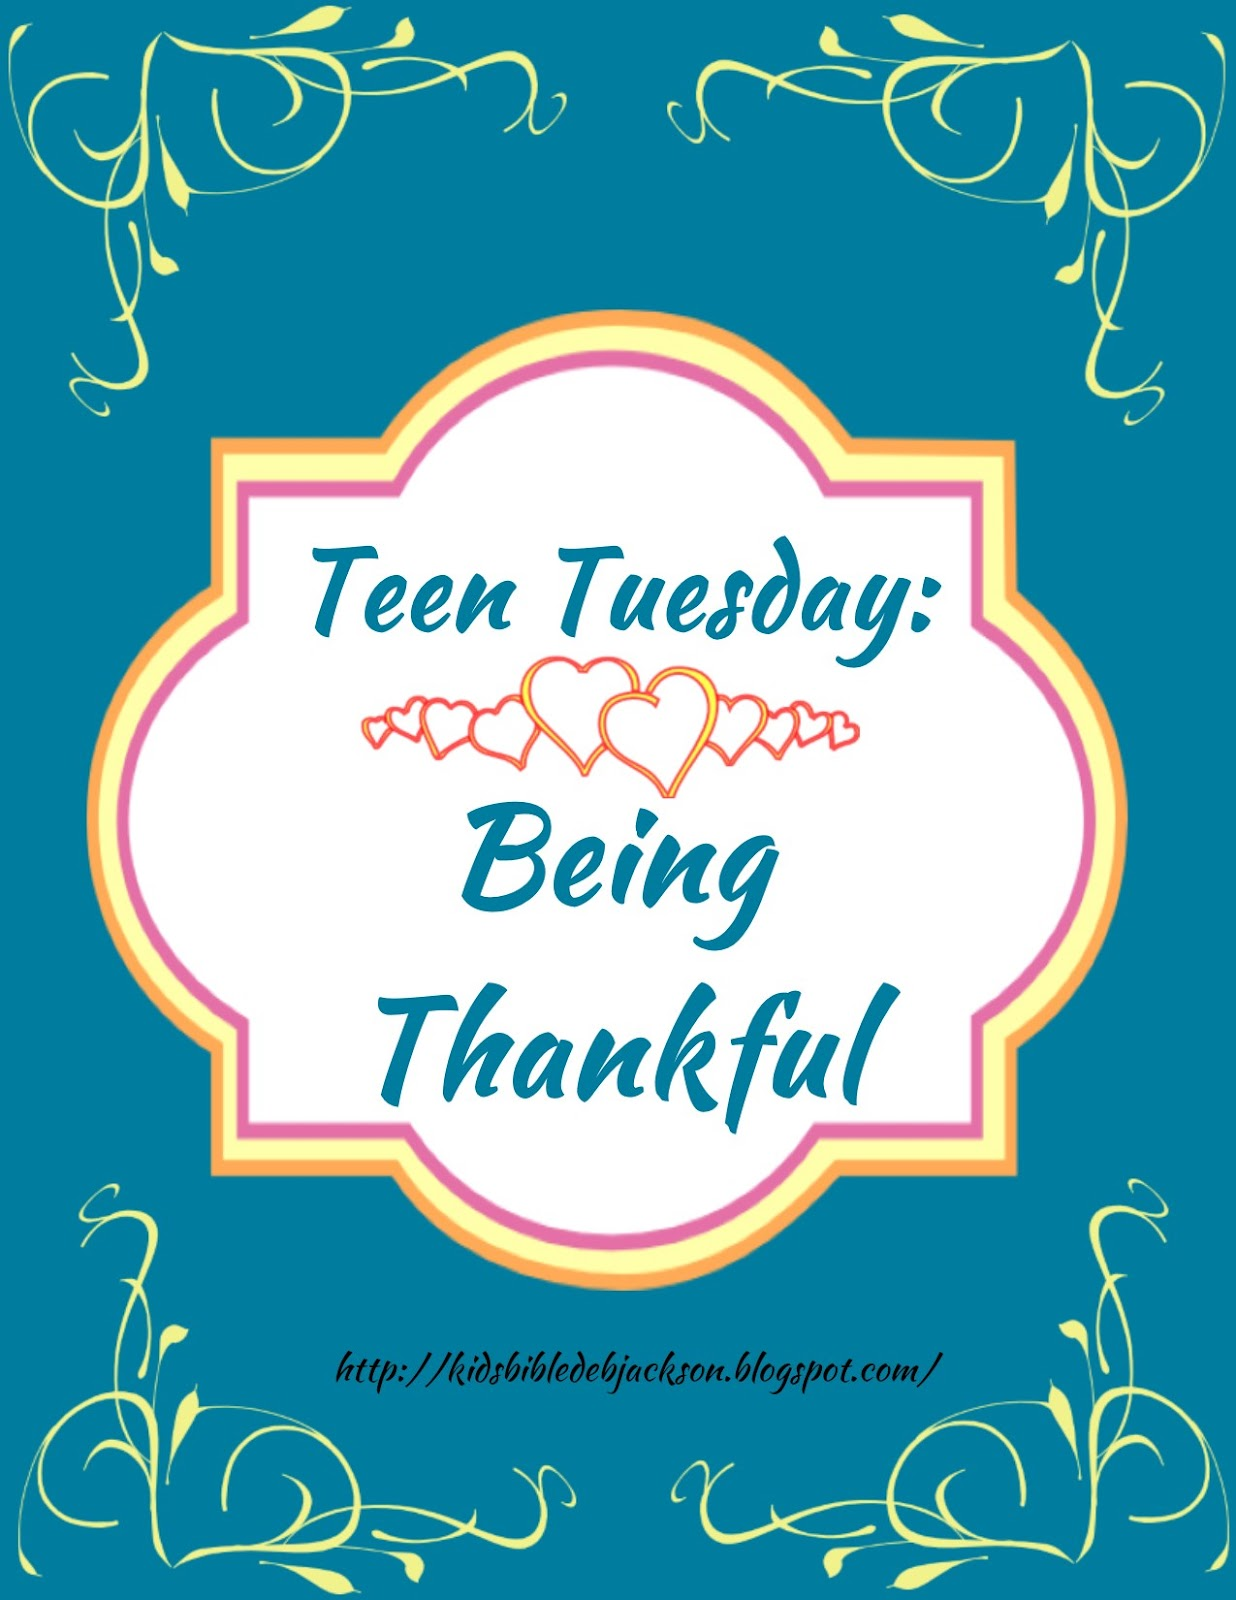 Teen Tuesday: Being Thankful